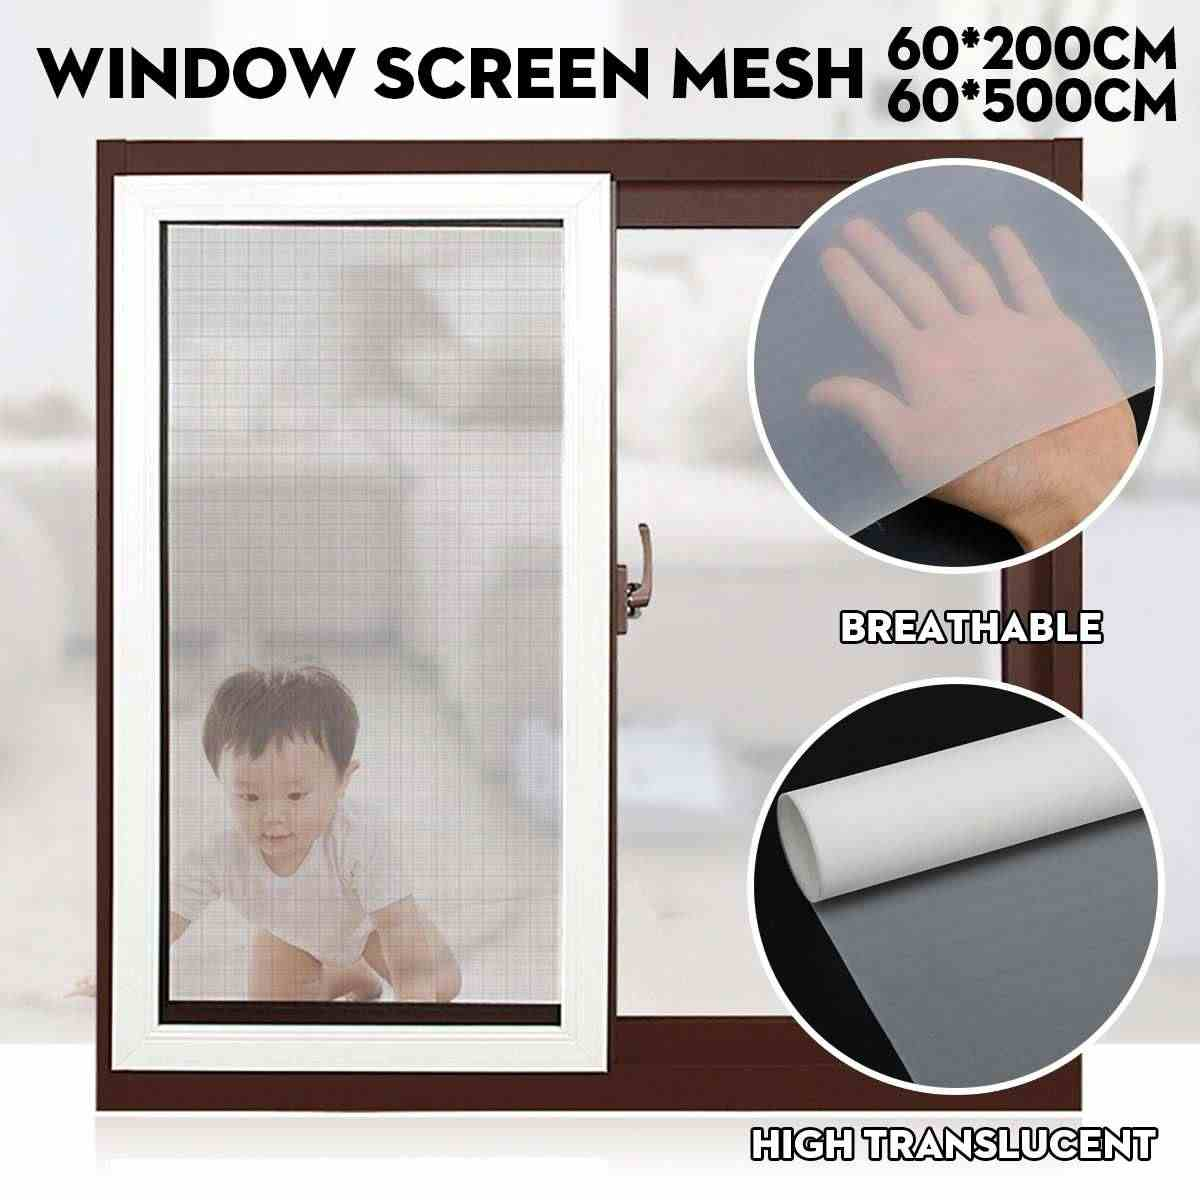 5M Dust-proof Indoor Window Screen Mesh Dustproof Insect Fly Curtain Anti PM2.5 Dust Mosquito Door Screen Denser Net Curtain